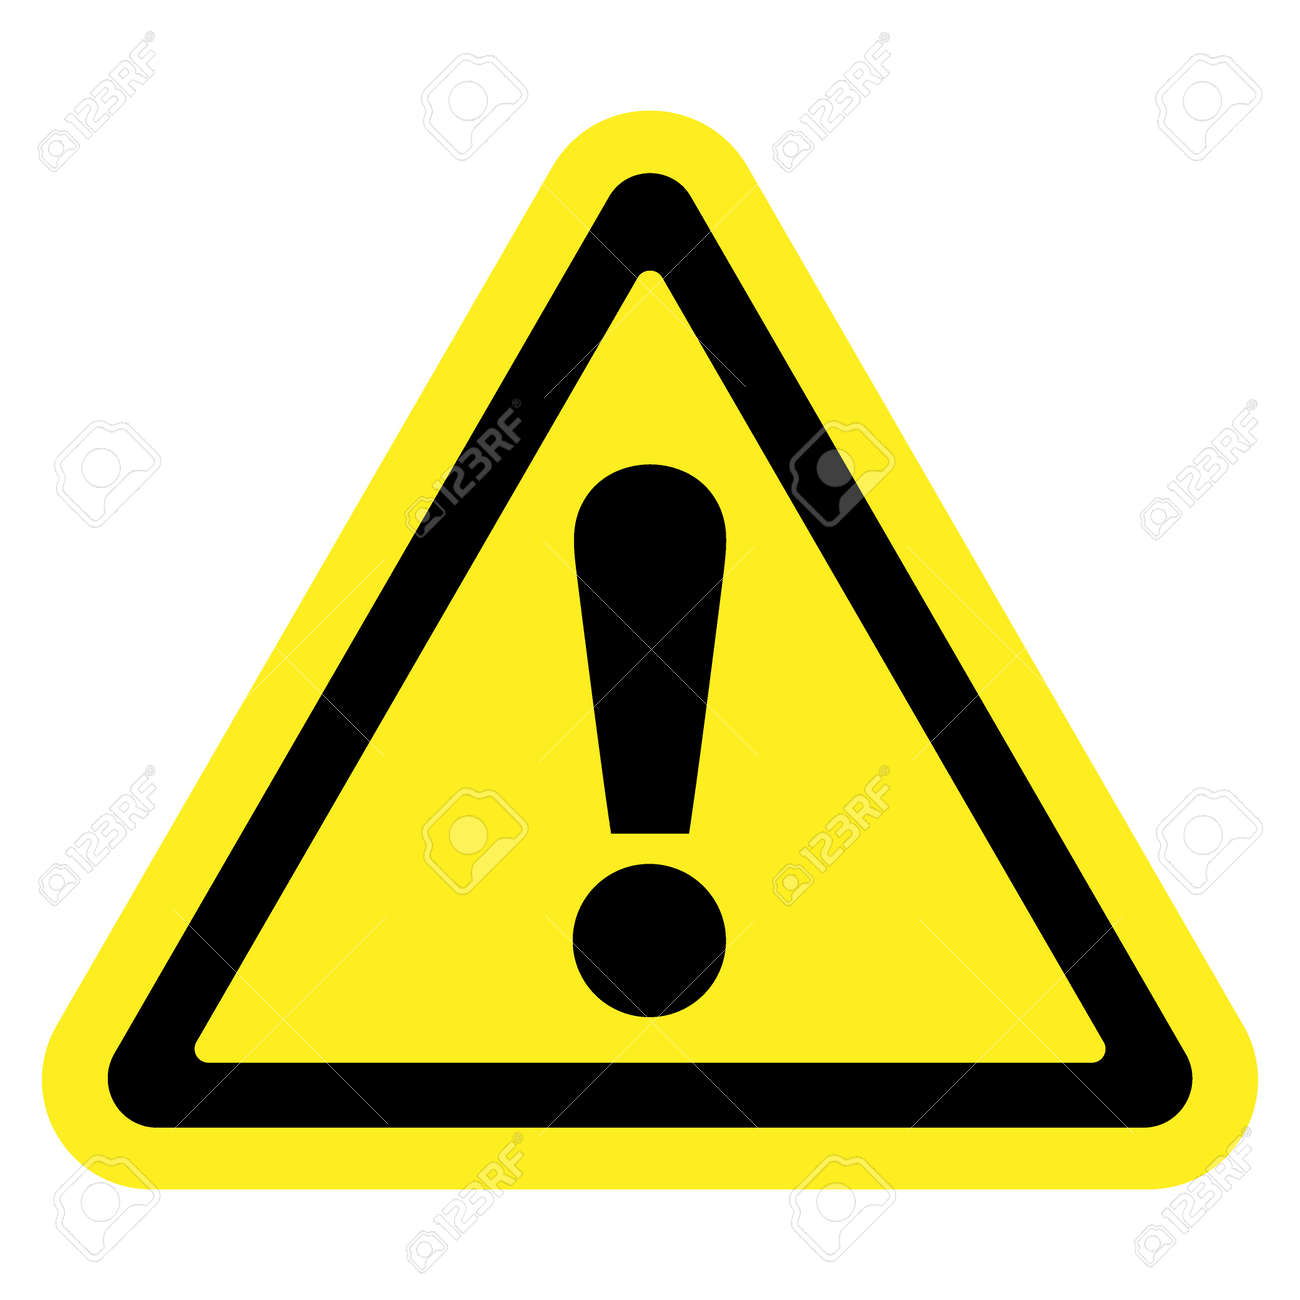 Hazard Warning Attention Sign Icon In A Yellow Triangle With